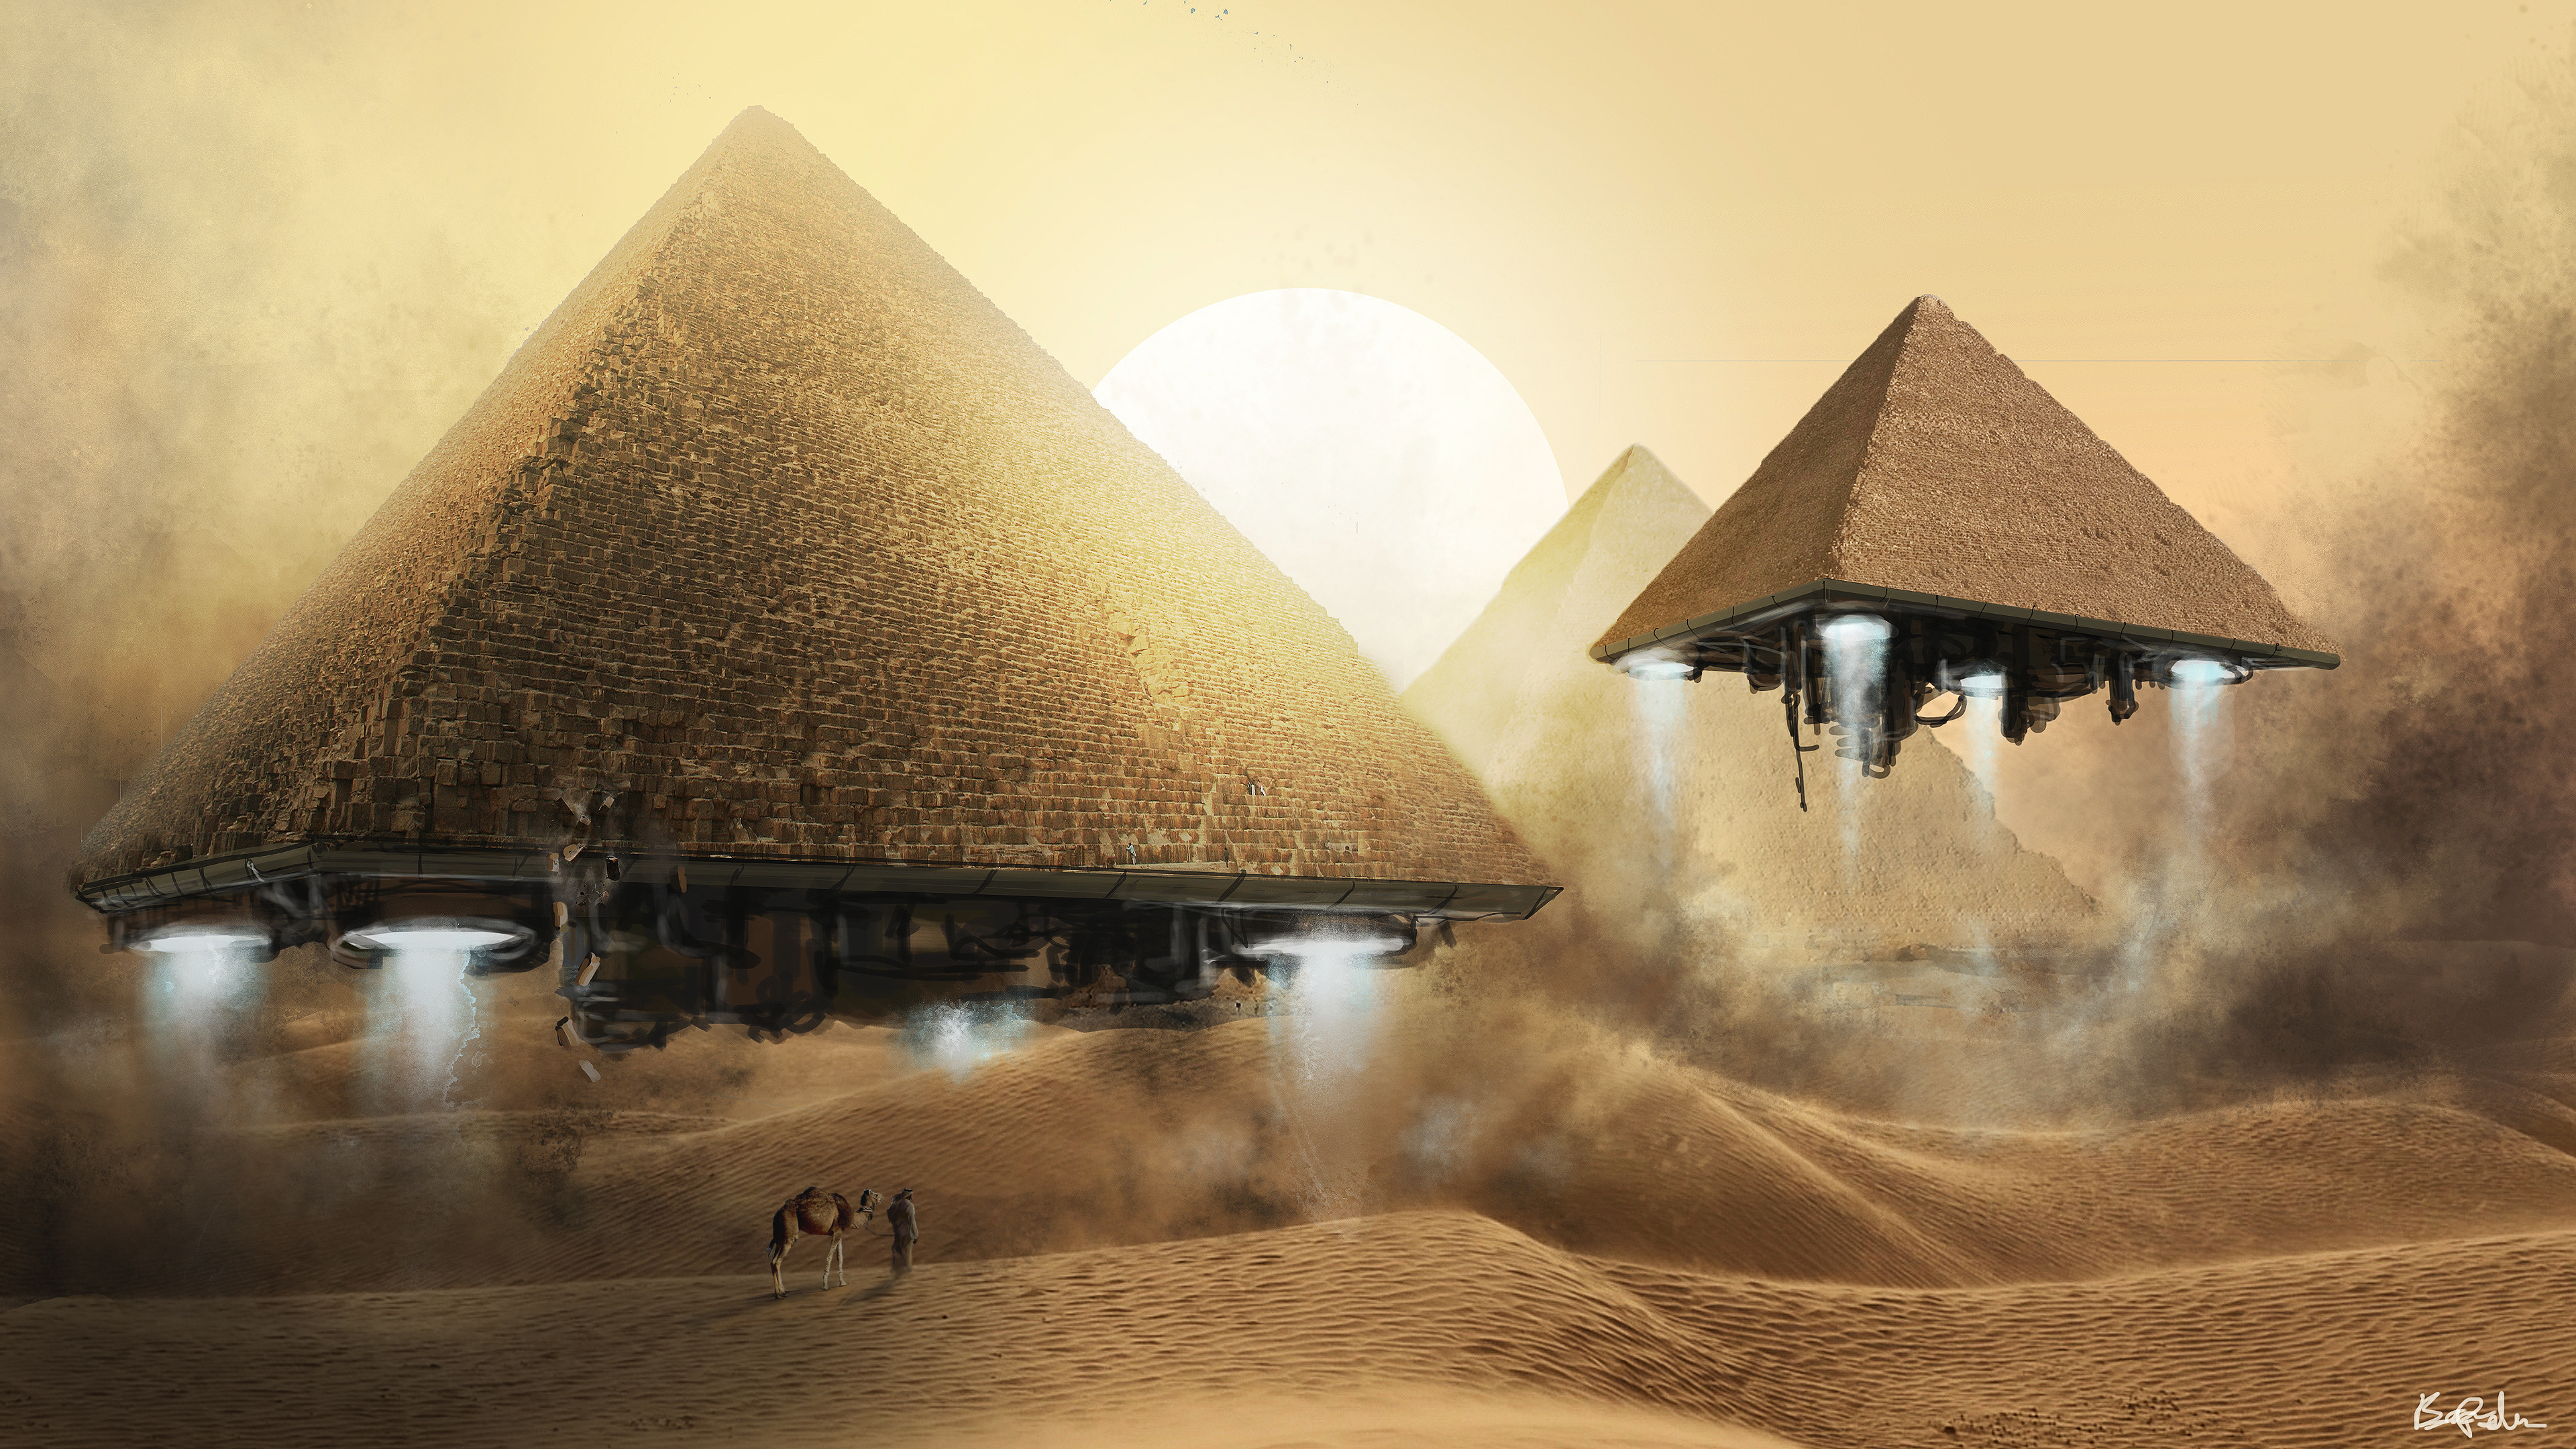 89 Pyramid Hd Wallpapers Background Images Wallpaper Abyss